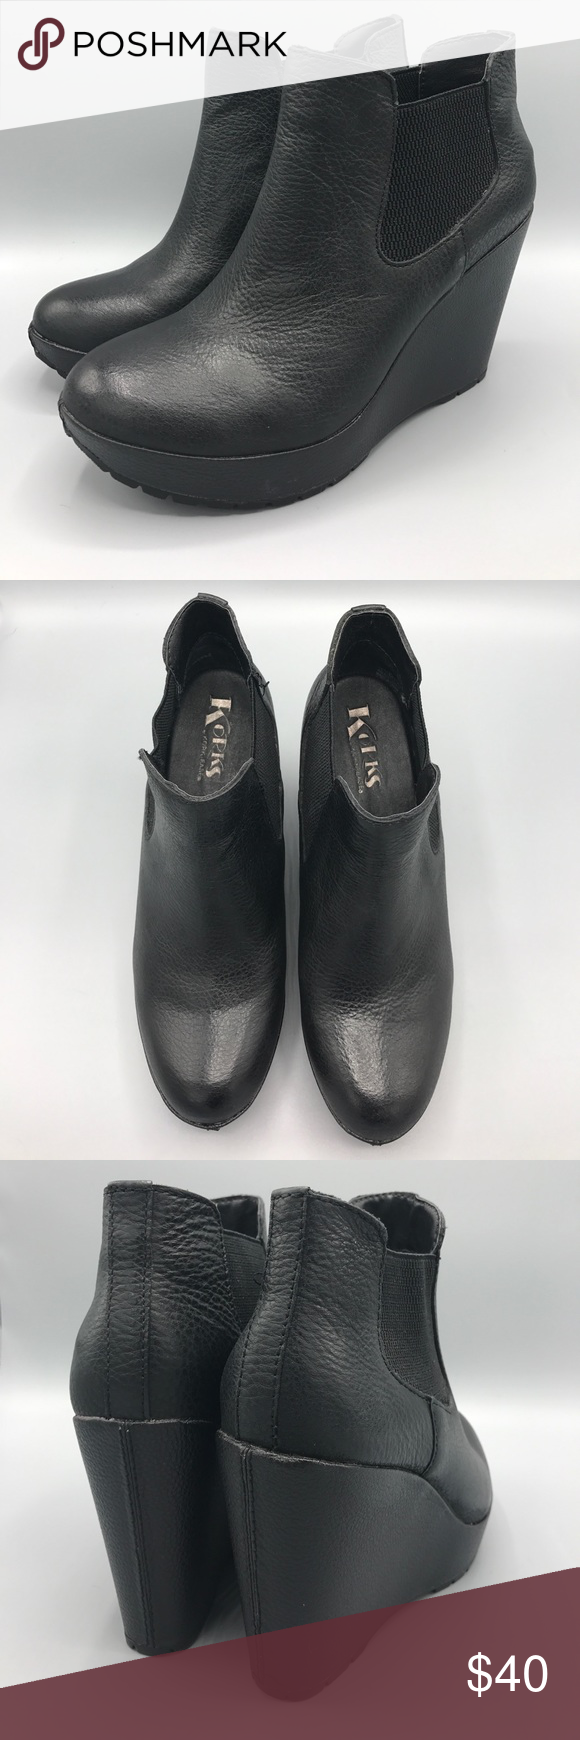 8b3a08415a25 Korks by Kork-Ease Hyannis Ankle Wedge Bootie 8.5 Brand new with slight  stitch defect. Doesn t effect look or wear-ability! Black leather upper and  wrapped ...